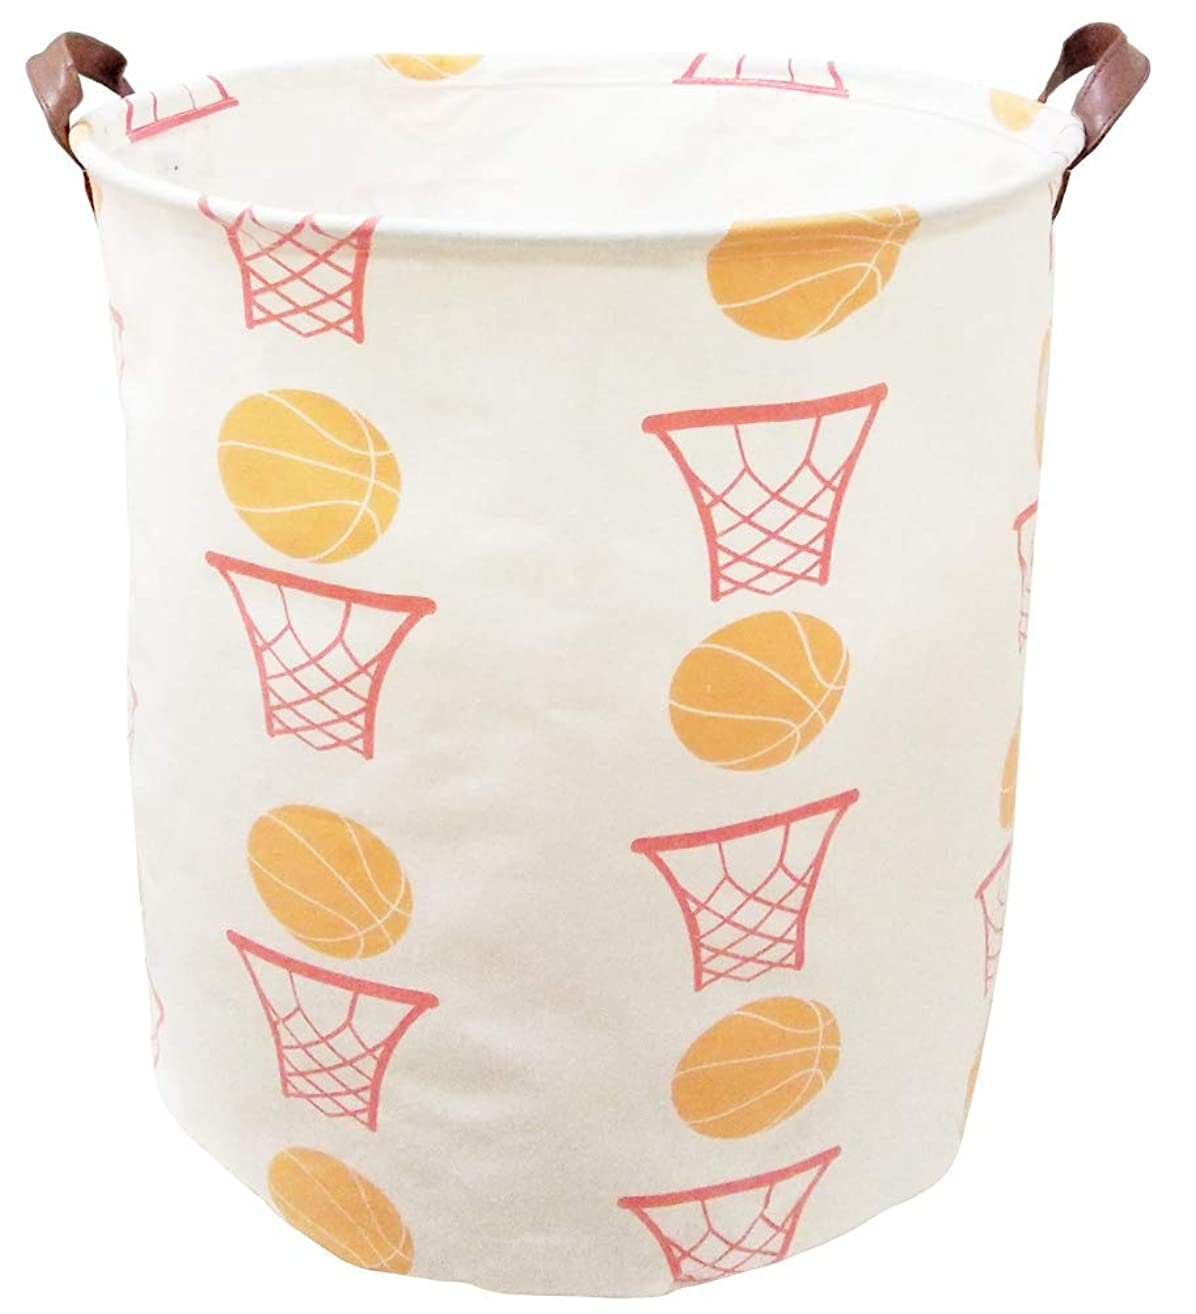 BOOHIT Cotton Fabric Storage Bin,Collapsible Laundry Basket-Waterproof Large Storage Baskets,Toy Organizer,Home Decor (Basketball)